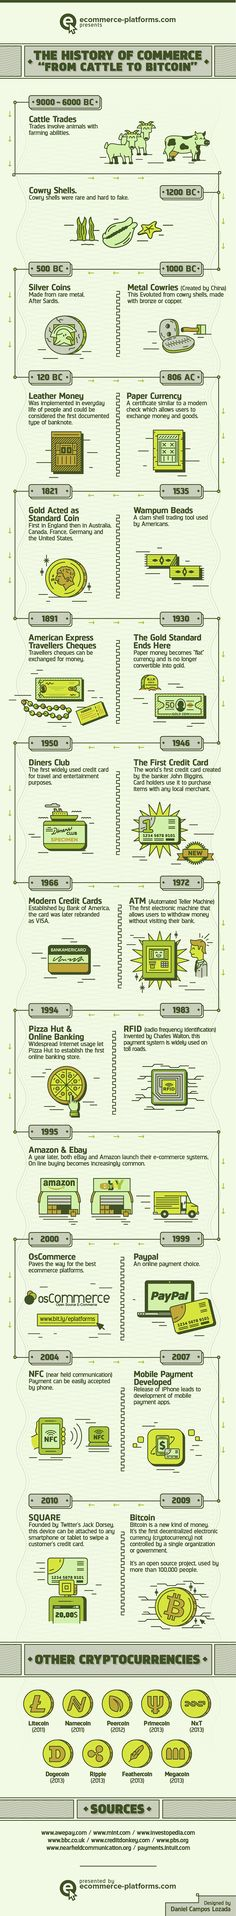 History of Commerce: From Cattle to Bitcoin [Infographic] Chatbot Ideas of C - Chatbot - The Chatbot Device which help to provide customer service in Cryptocurrency Trading, Bitcoin Cryptocurrency, Digital Coin, Bitcoin Business, Crypto Coin, What Is Bitcoin Mining, Bitcoin Wallet, Bitcoin Currency, Marketing Digital